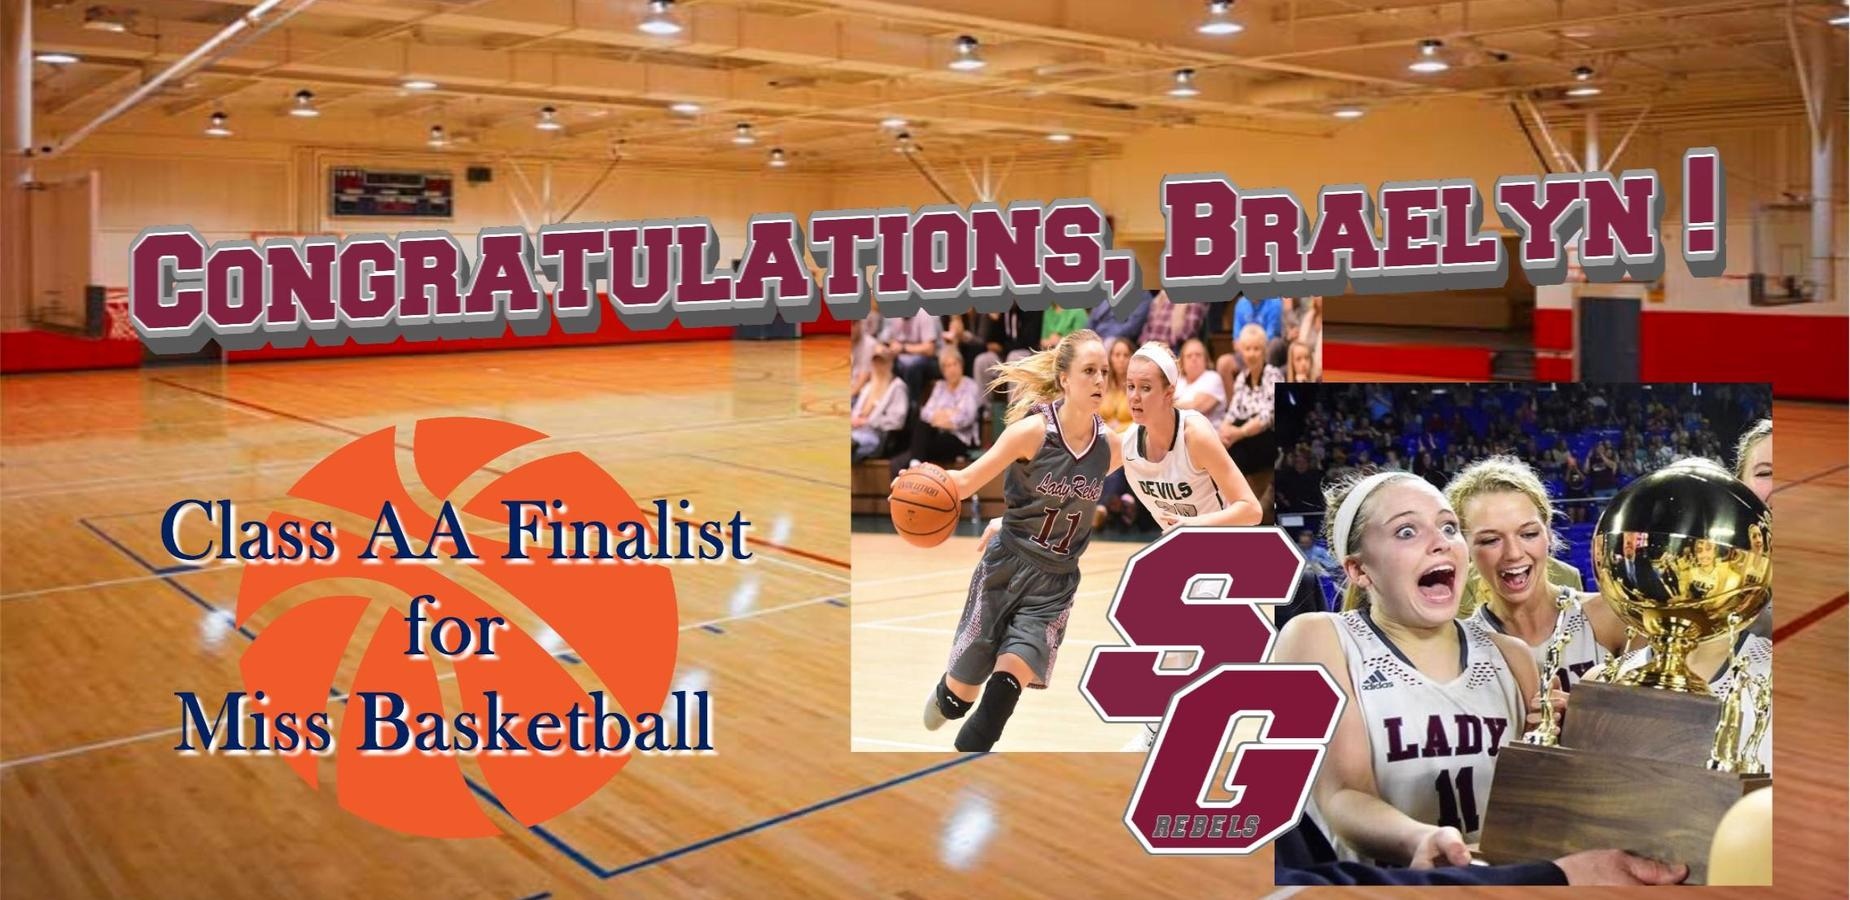 Braelyn Finalist for Class AA Miss Basketball